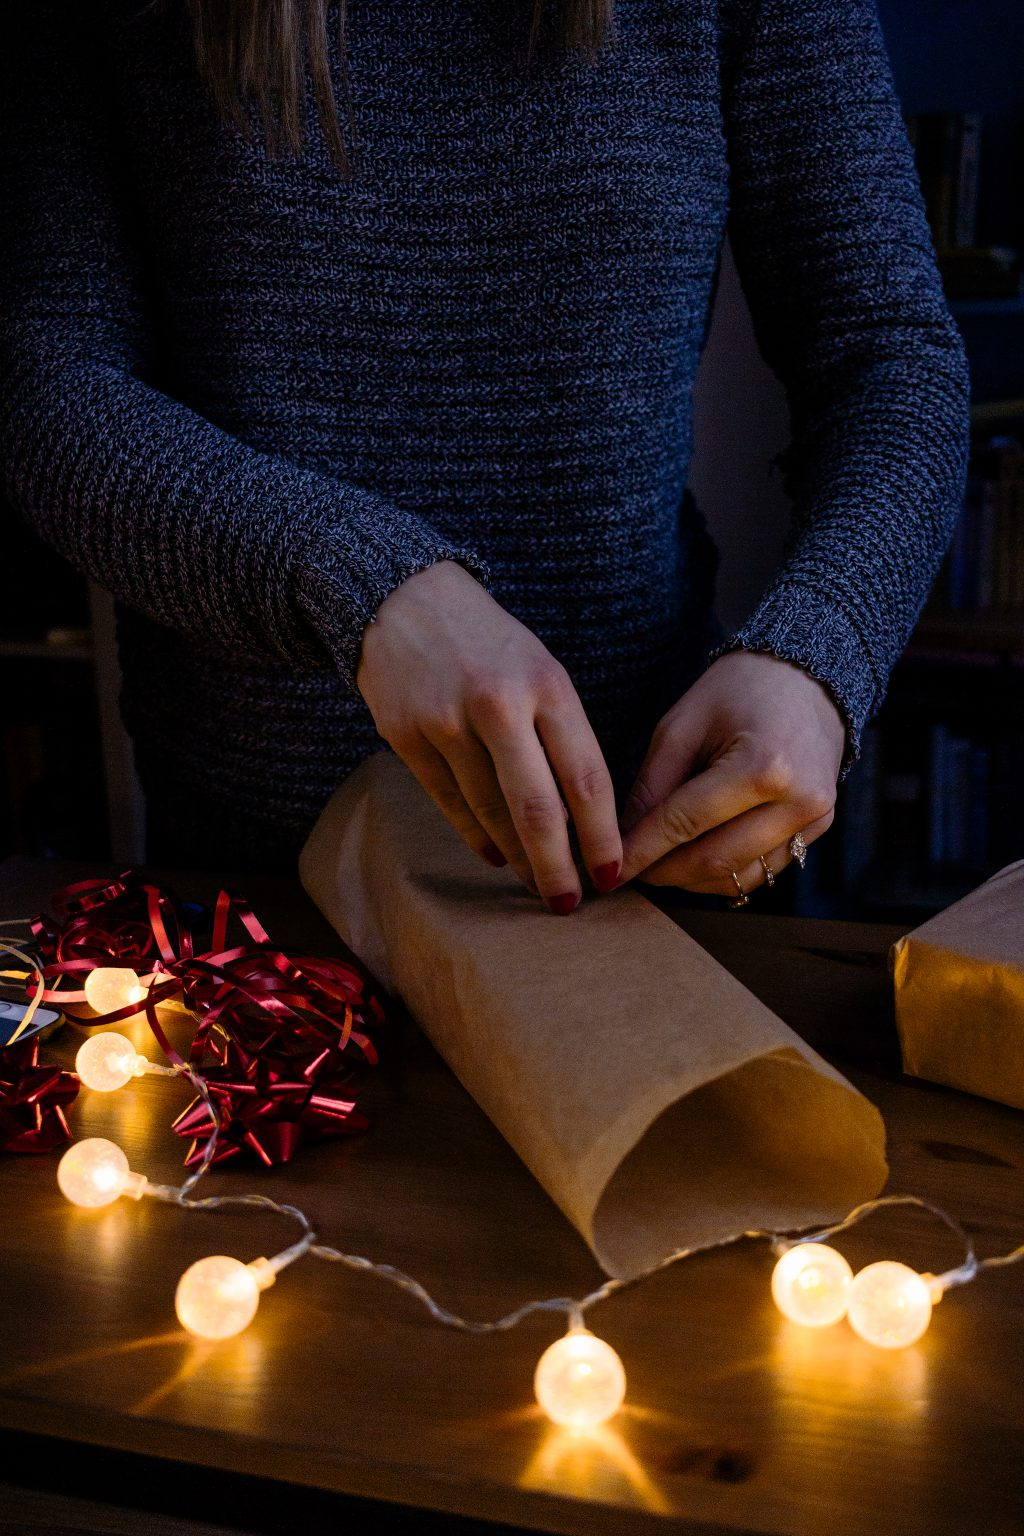 A female wrapping a gift - free stock photo